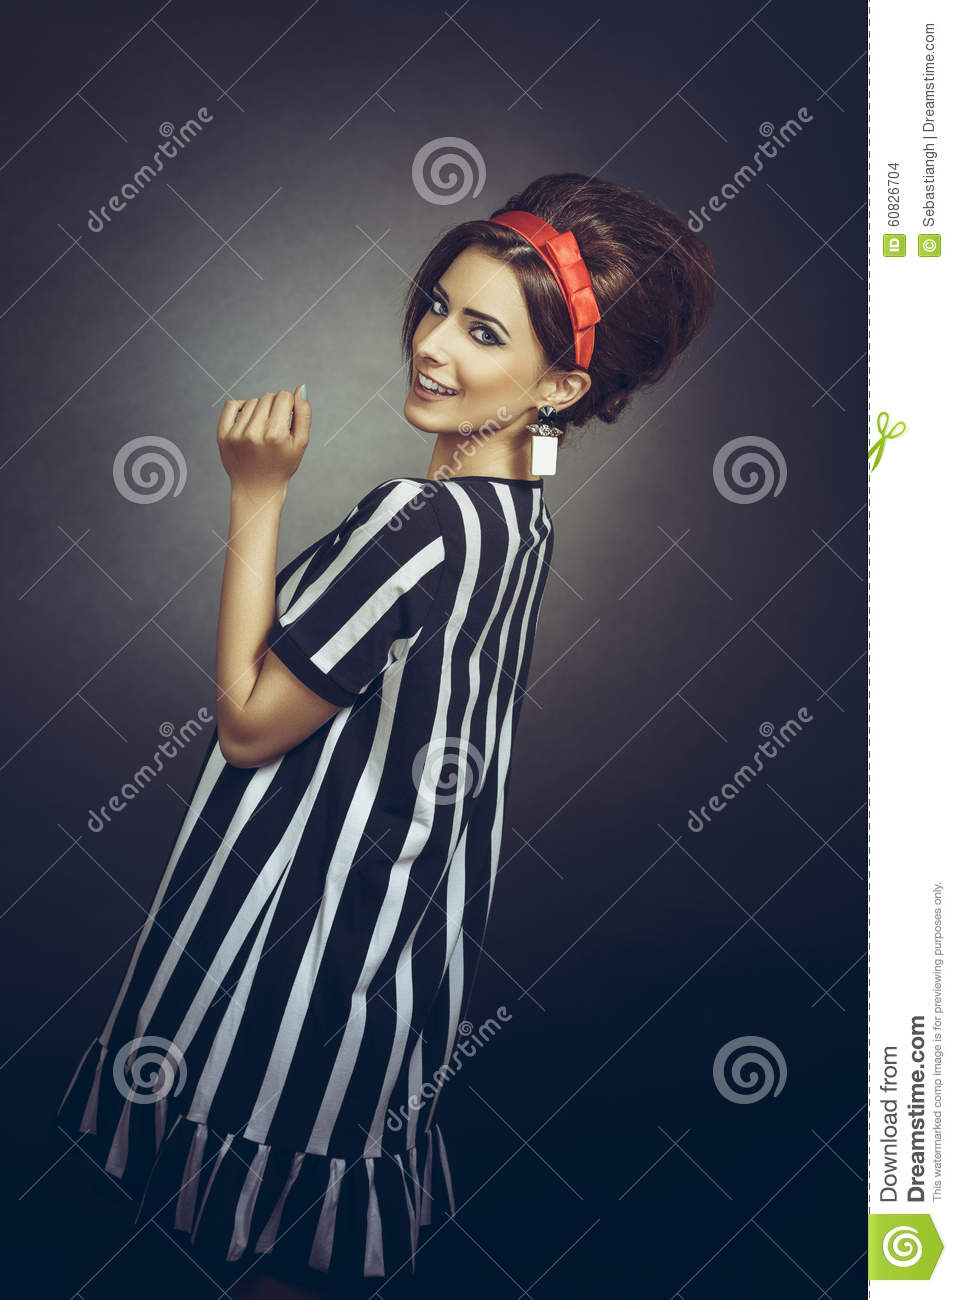 Beautiful Joyful Young Fashion Female Model Wearing Vintage Black And White Stripped Outfit Red Headband Large Earrings Looking Back Over Her Shoulder